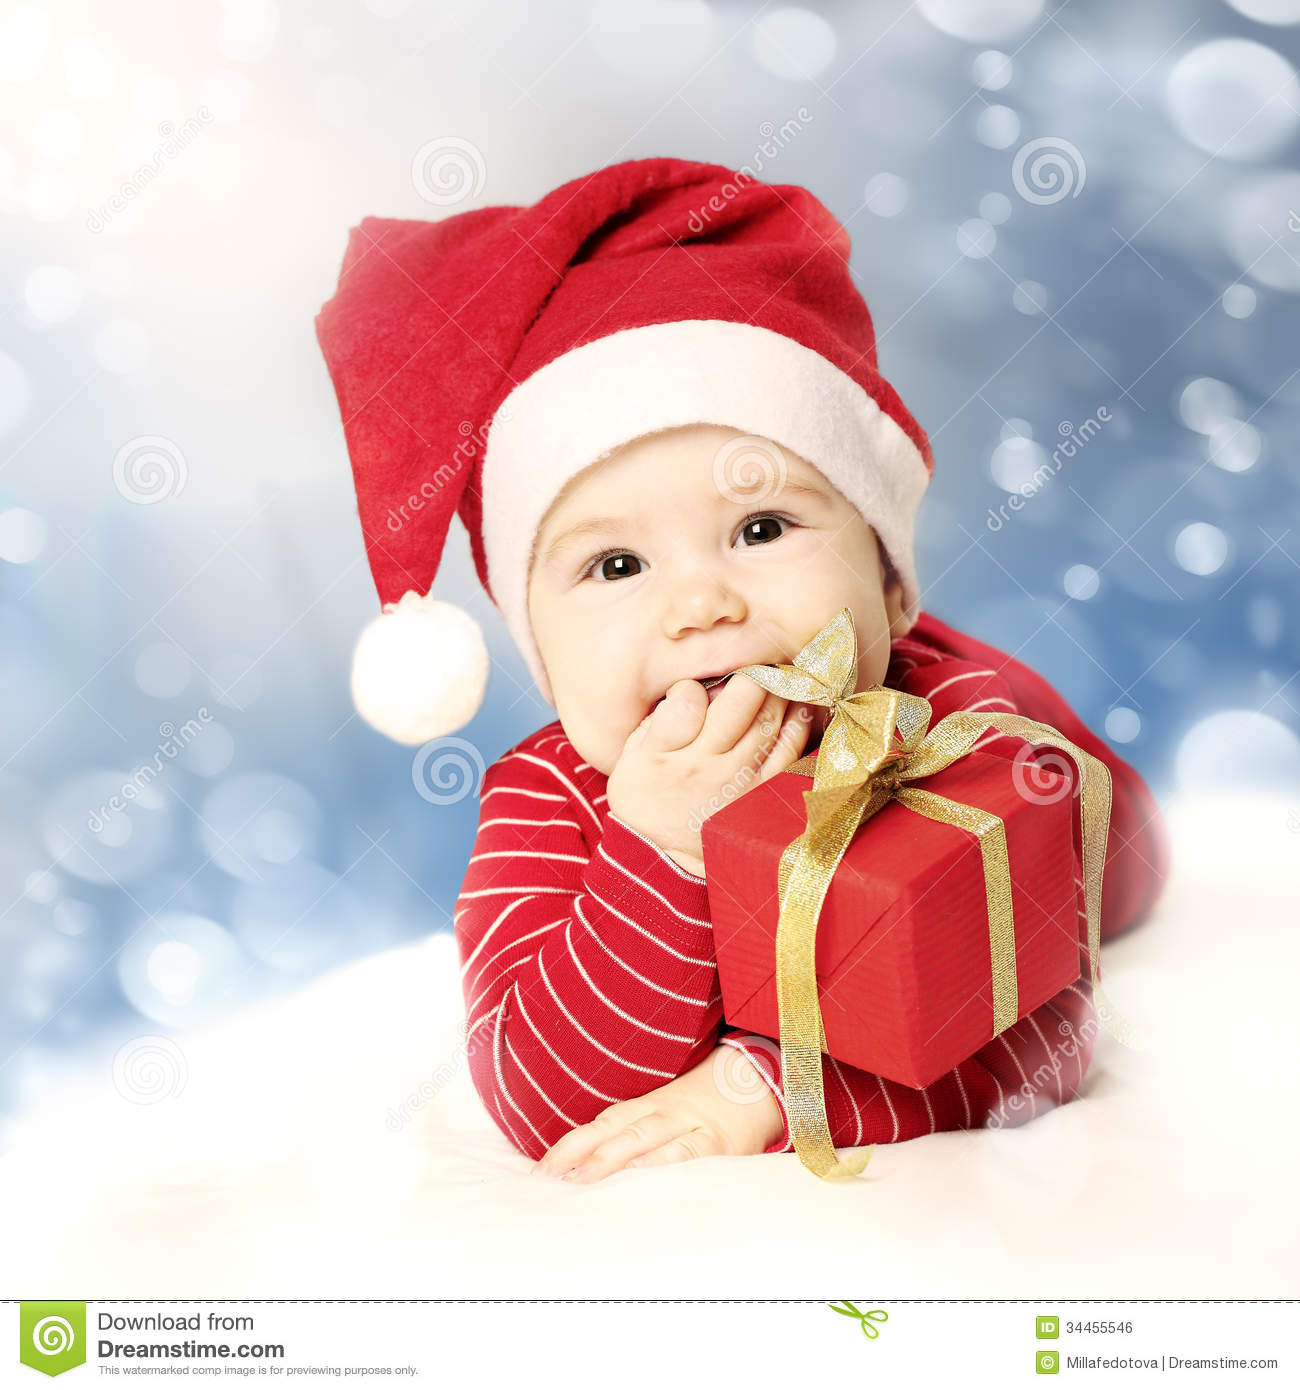 Happy New Year Baby With Red Gift On Snow Stock Photo   Image of     Happy New Year baby with red gift on snow